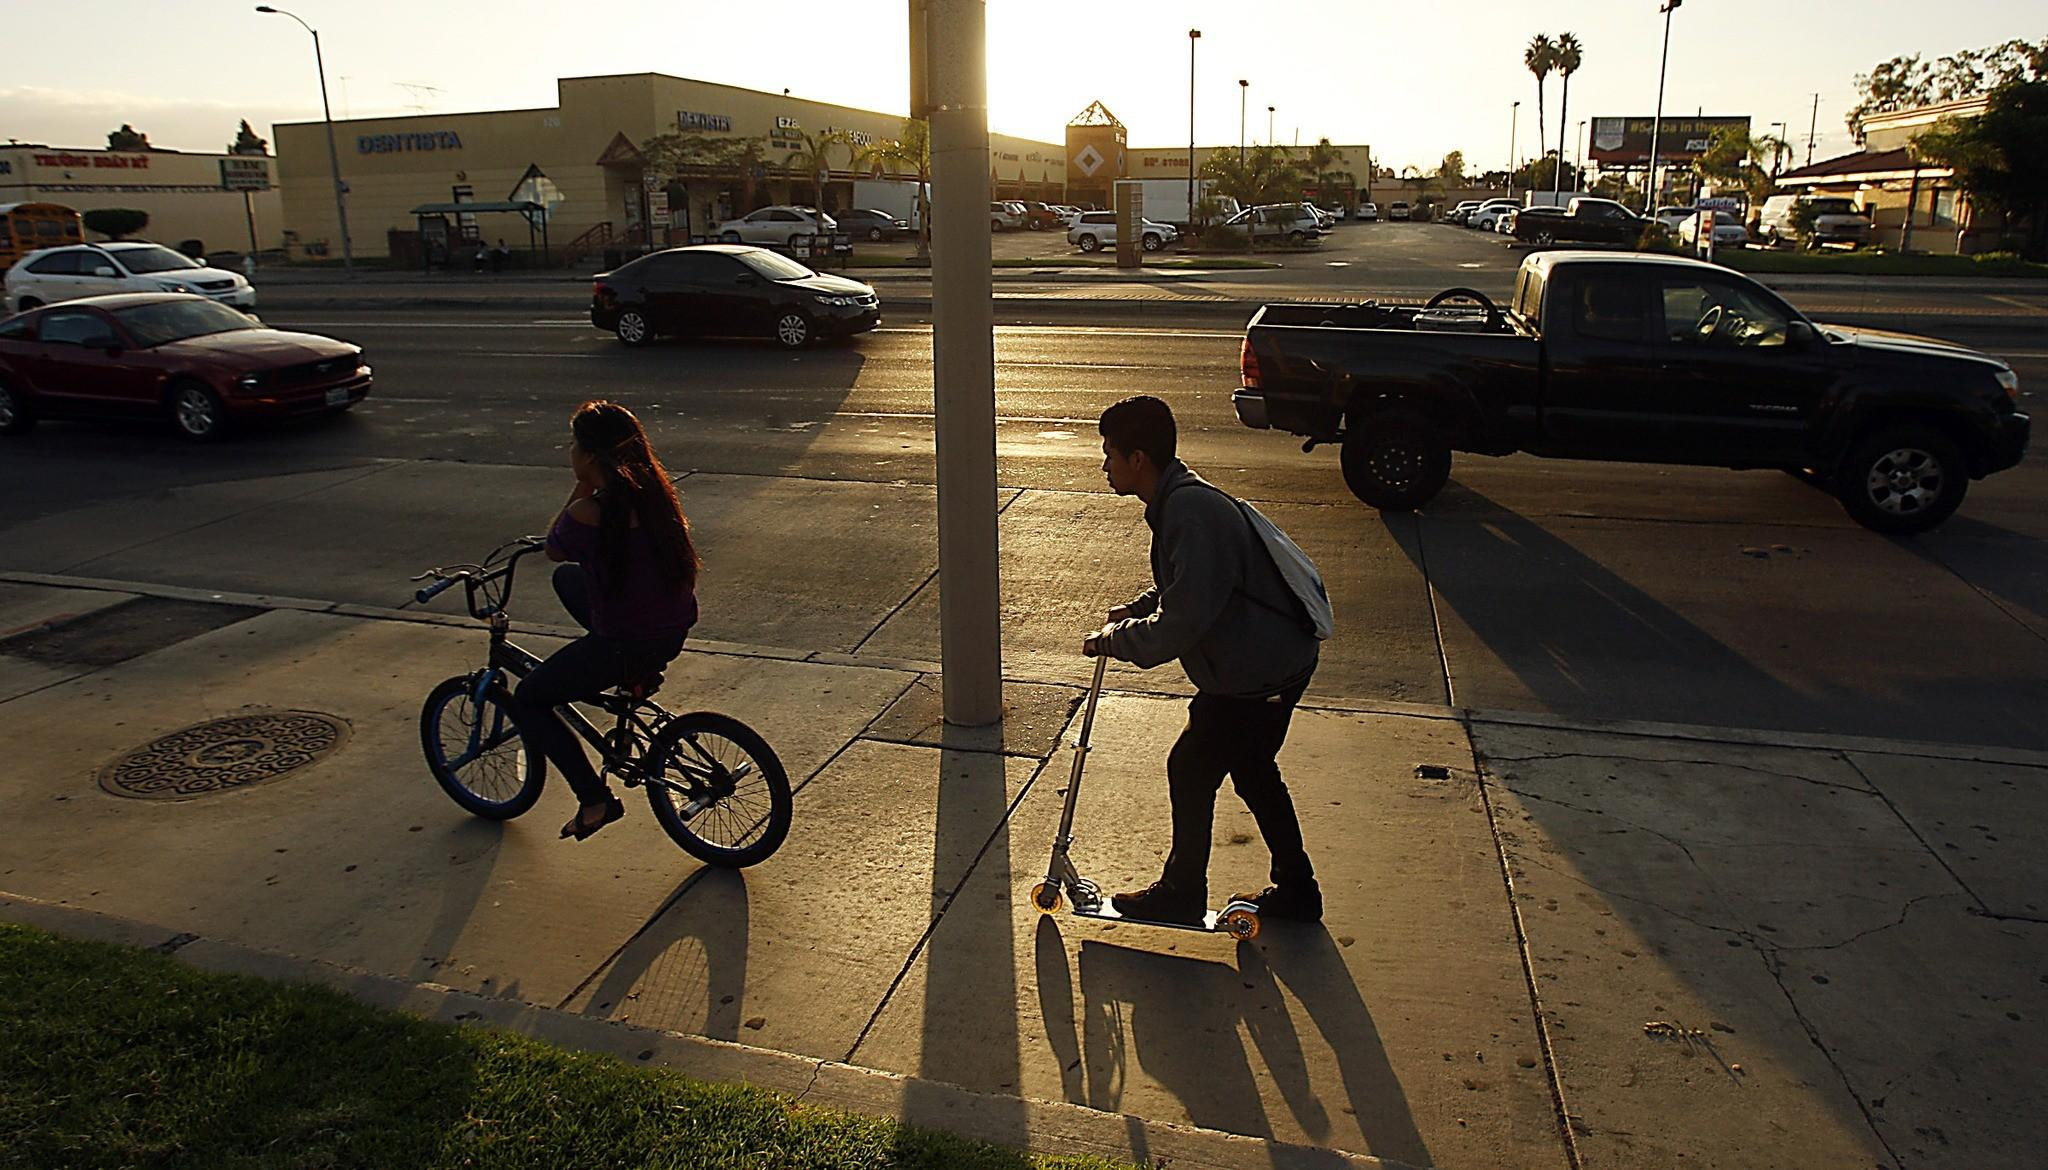 Kids scoot down Harbor Boulevard in Santa Ana as late afternoon traffic rolls along a landscape of strip malls. Despite real estate development, the boulevard has seen little change over the years. There is no equivalent of the light-rail expansion that is remaking L.A., neither is there a large infusion of bike lanes or a rethinking of pedestrian access that would better engage with the landscape. (Luis Sinco / Los Angeles Times)